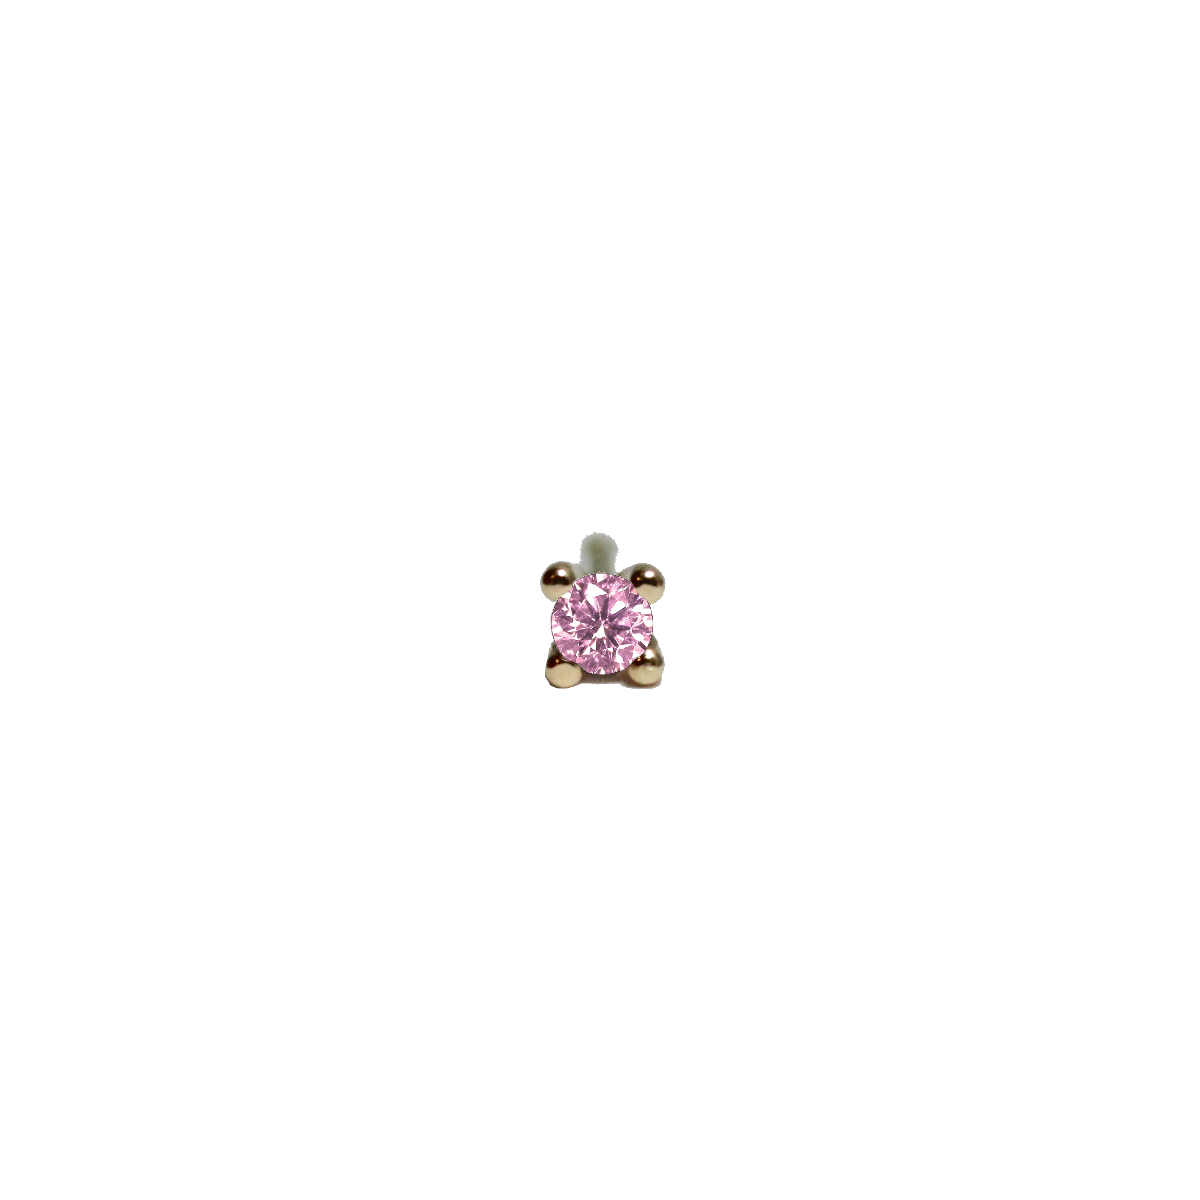 Tiny Pointy Earstud - Pink sapphire